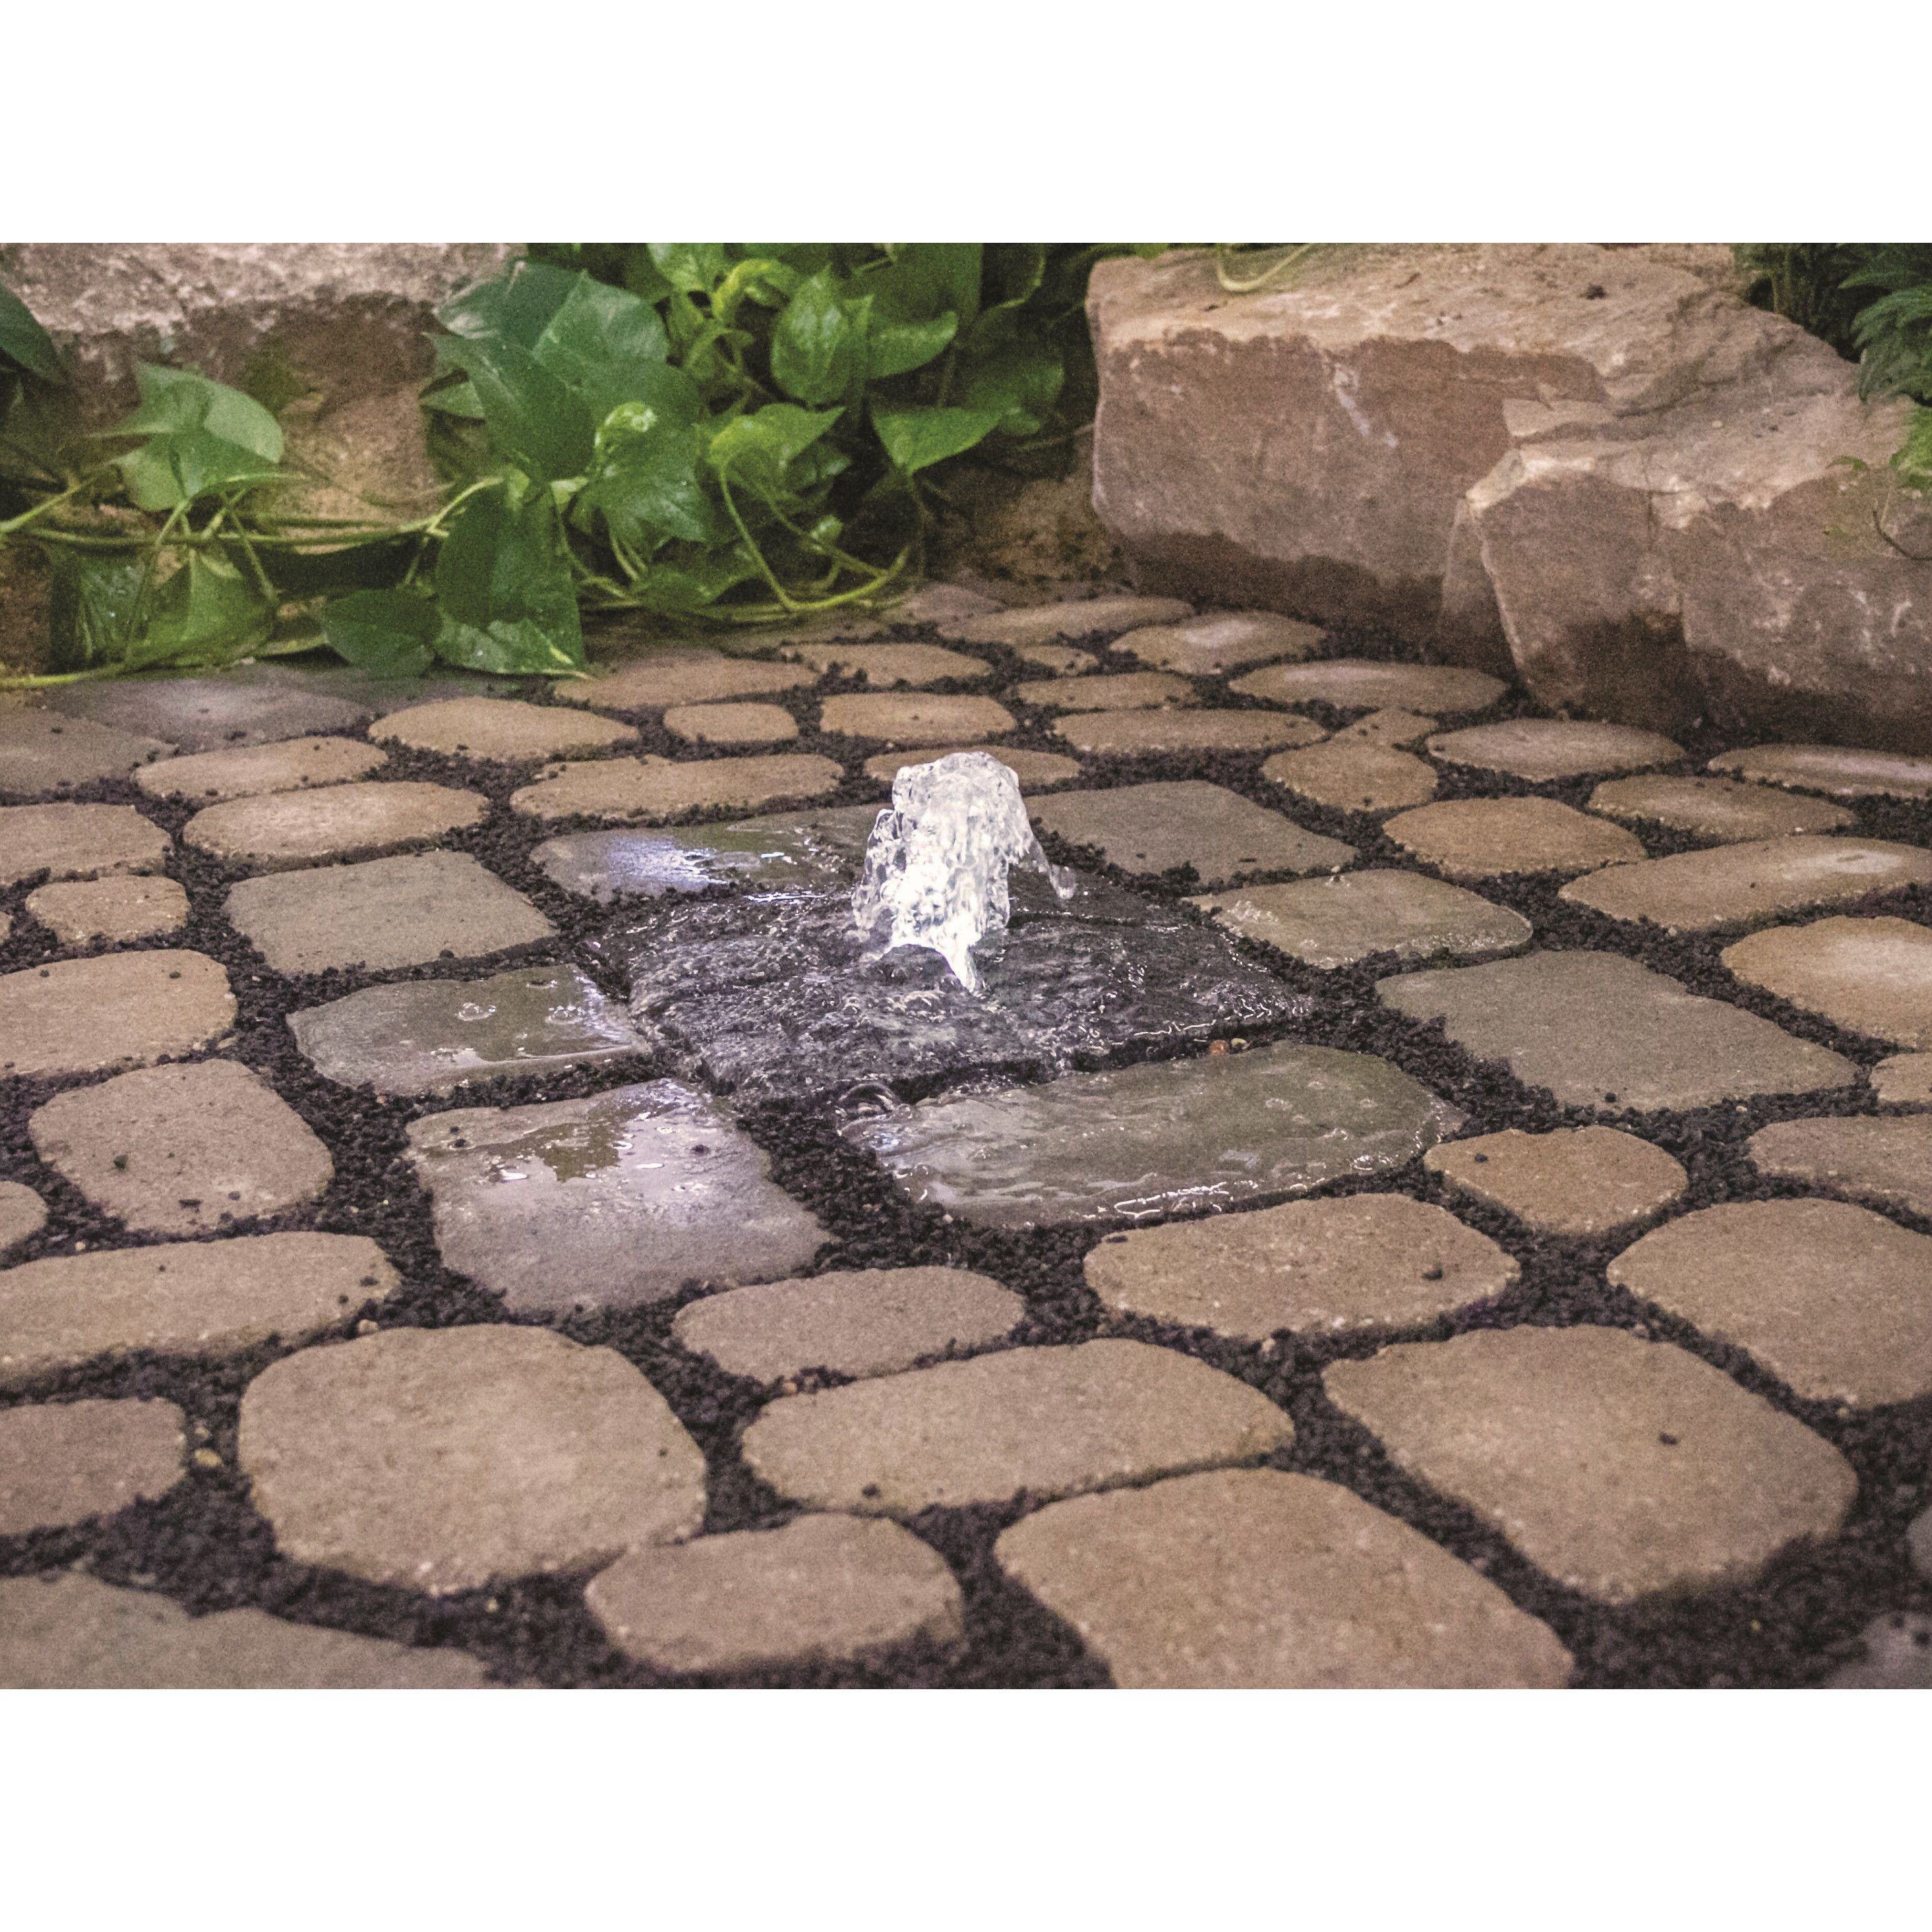 Natural Stone Bubbling Fountain Fountains Outdoor Water Features Stone Fountains